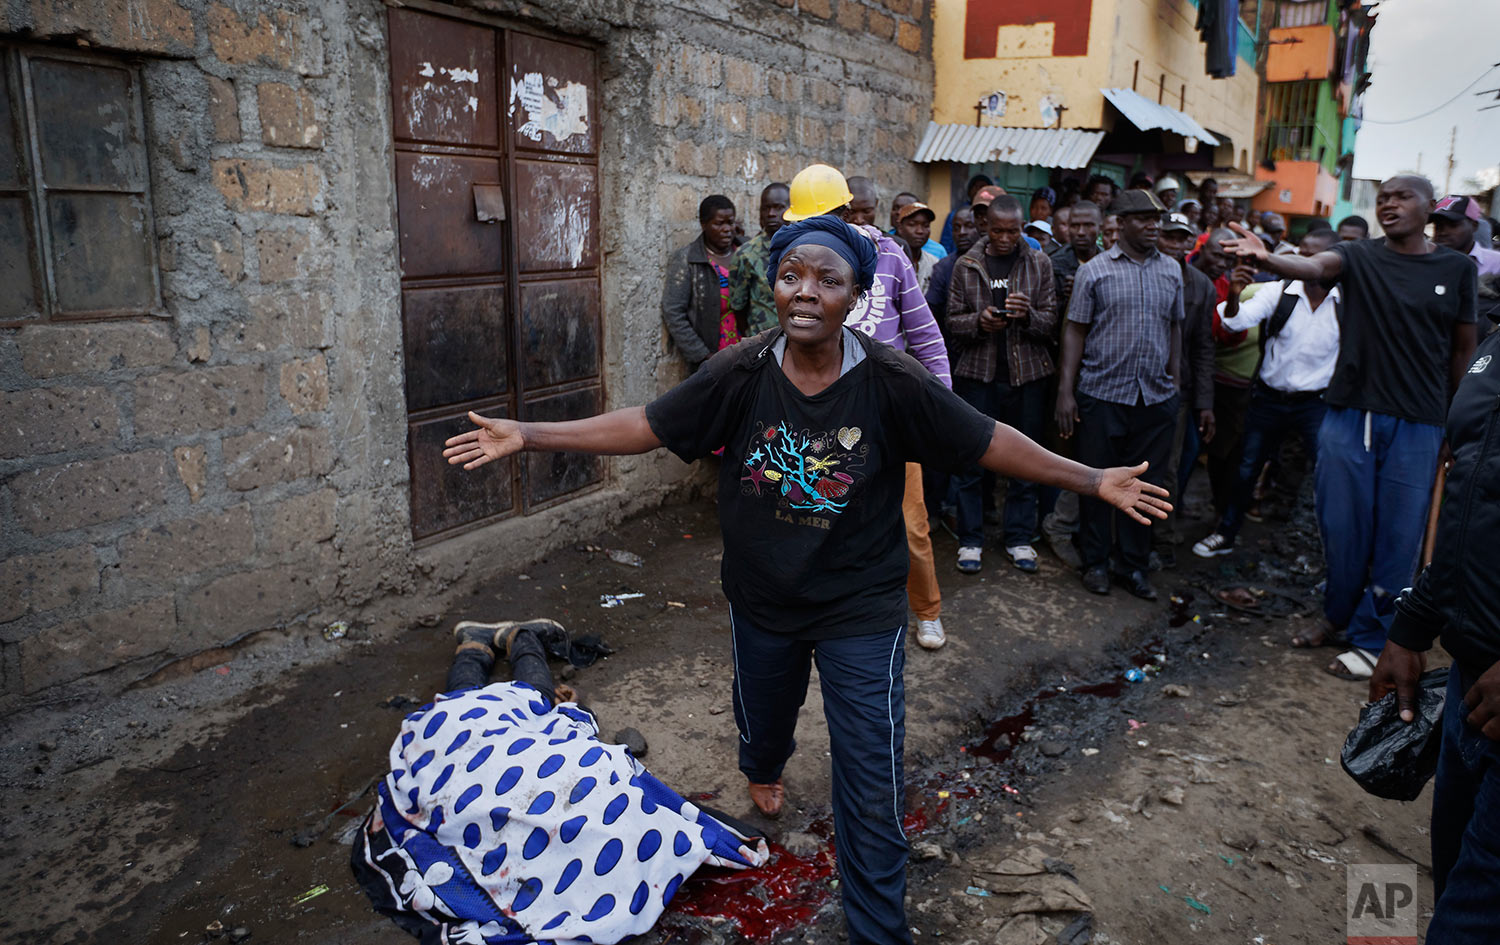 A woman wails in front of the covered body of a man who had been shot in the head and who the crowd claimed had been shot by police, as the angry crowd shouts towards the police, in the Mathare slum of Nairobi, Kenya, Wednesday, Aug. 9, 2017. Kenya's election took an ominous turn on Wednesday as violent protests erupted in the capital. (AP Photo/Ben Curtis)